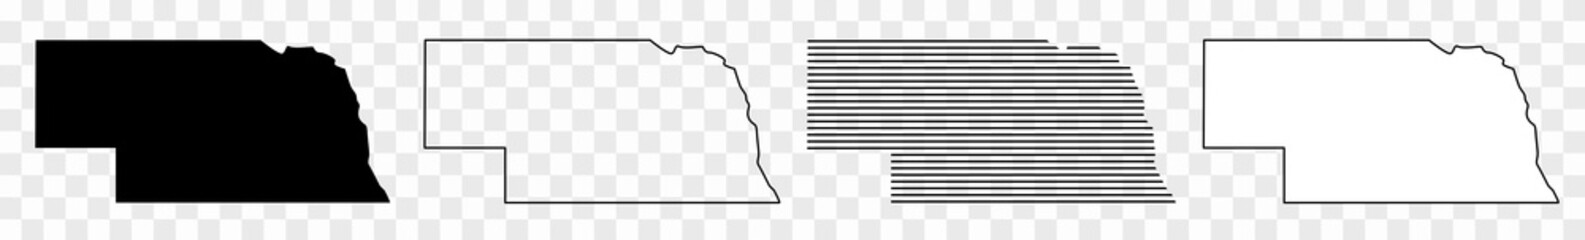 Nebraska Map Black | State Border | United States | US America | Transparent Isolated | Variations